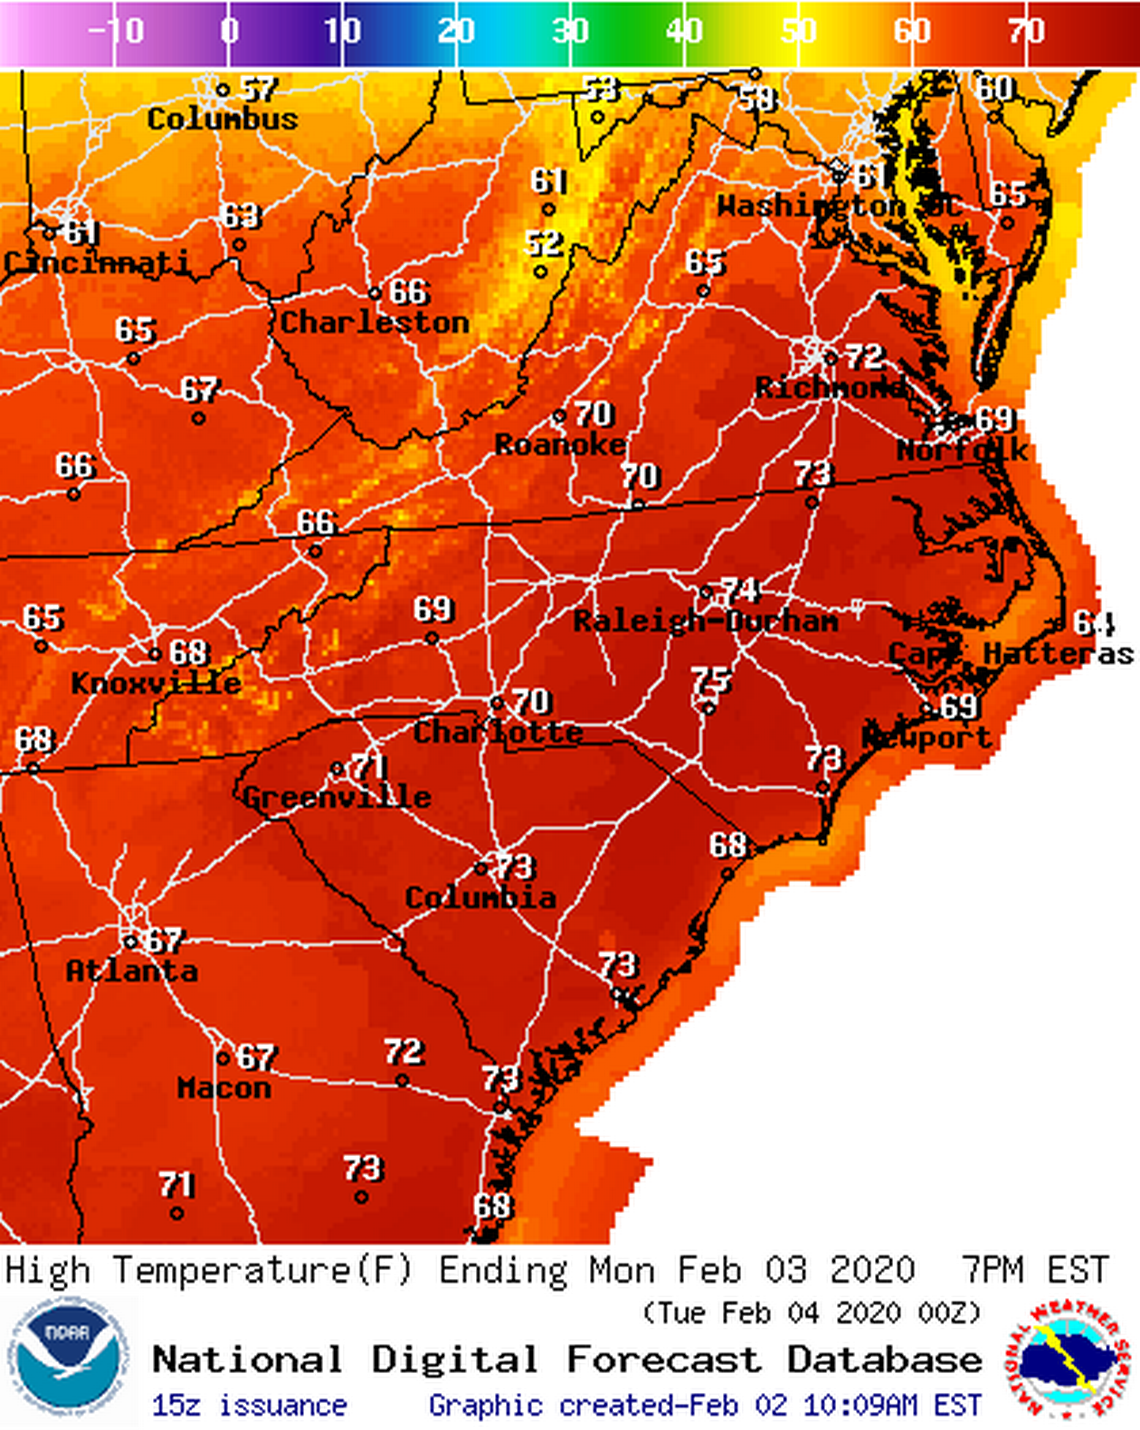 Spring in February? Unusually warm weather forecast for the Carolinas this week